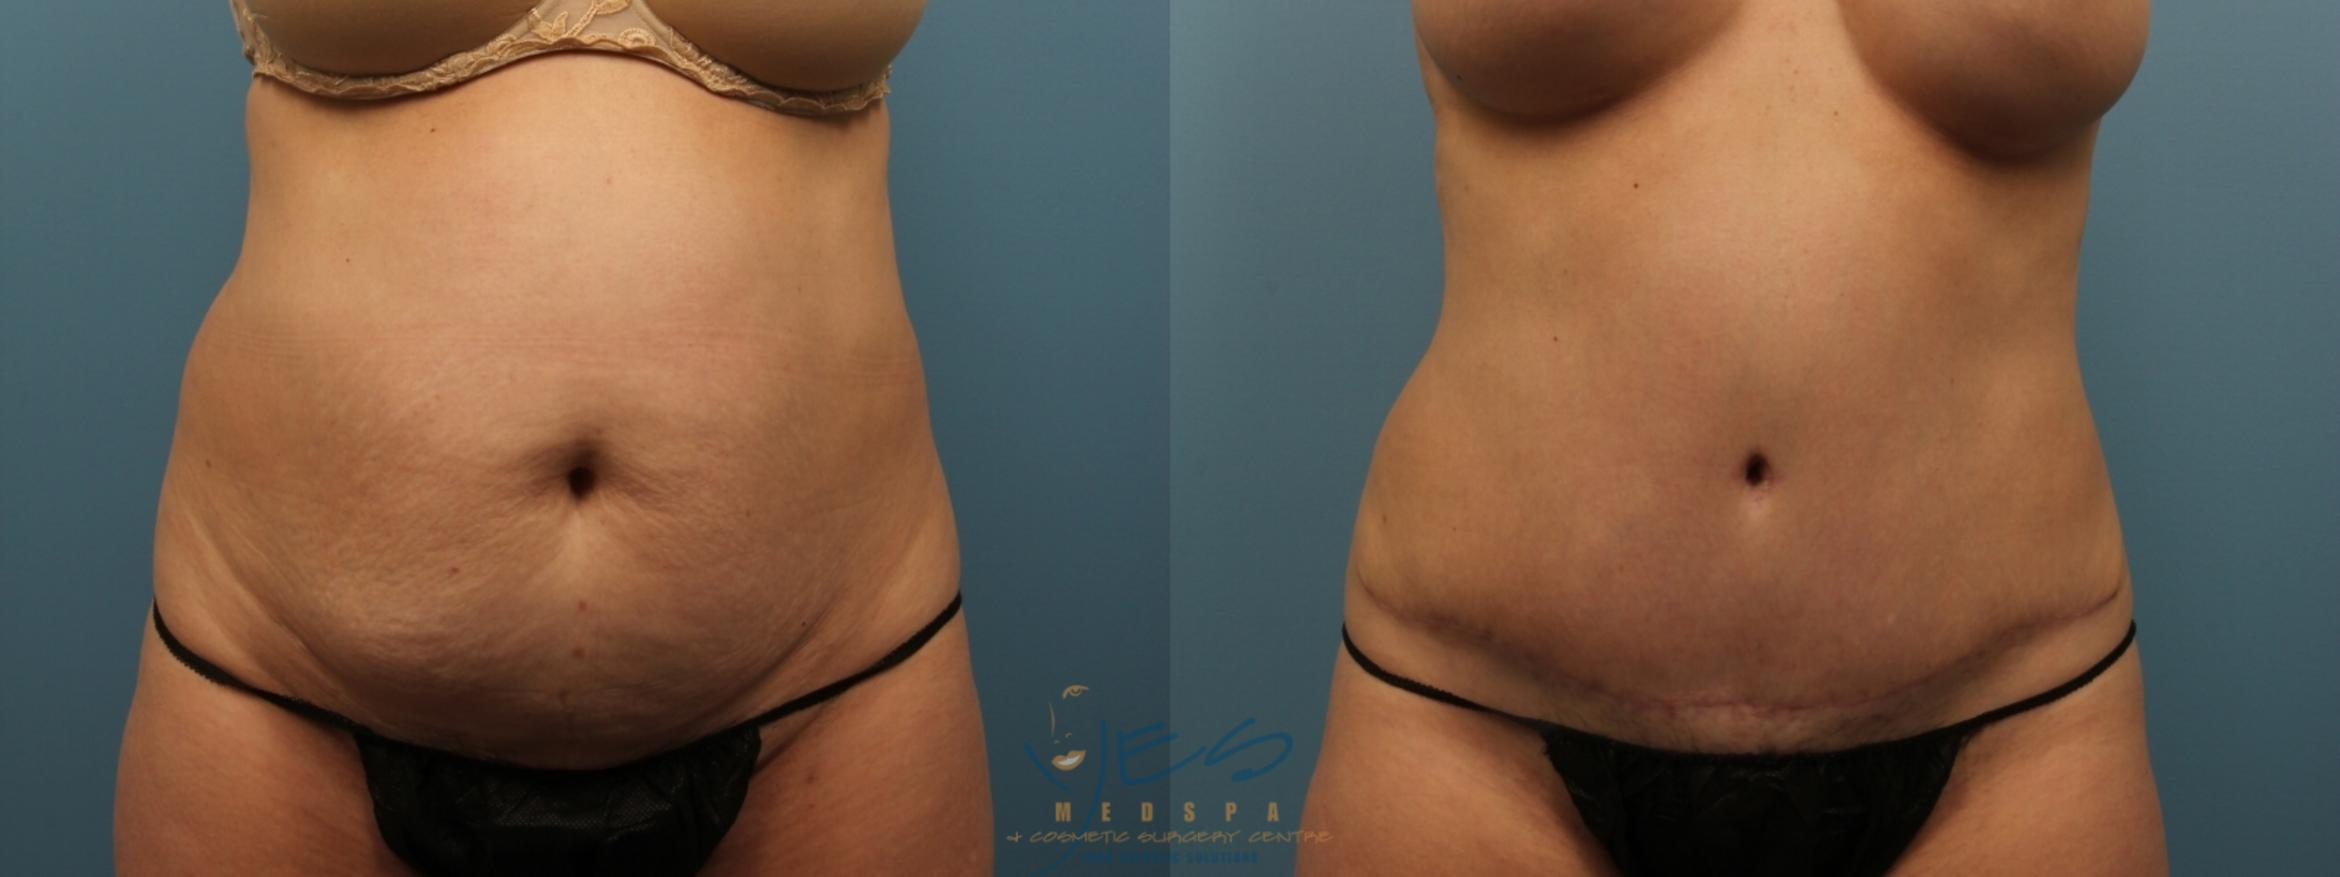 Tummy Tuck Case 151 Before & After Front | Langley, BC | YES Medspa & Cosmetic Surgery Centre